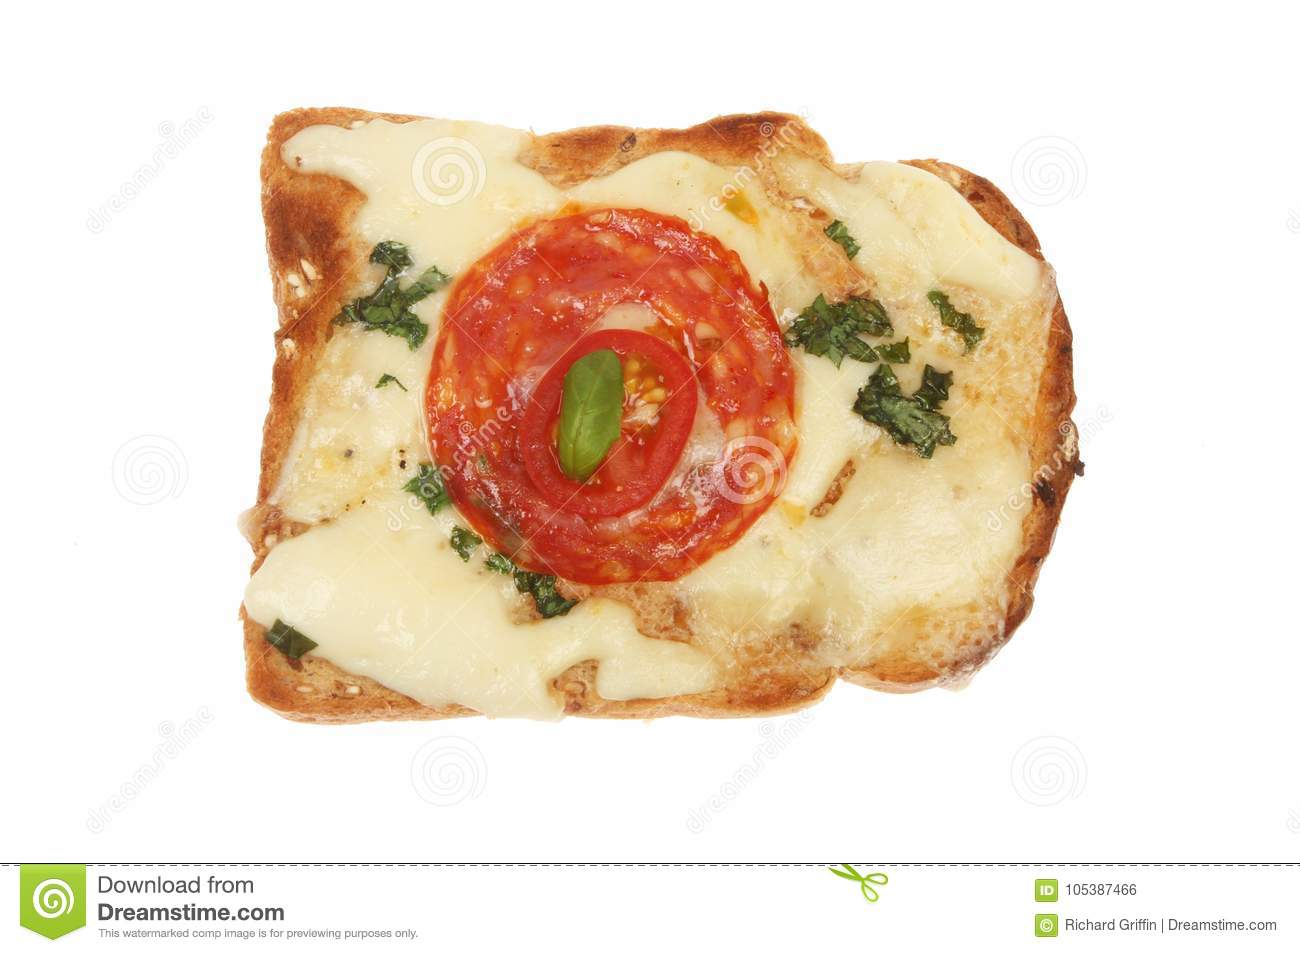 Savory toasted snack